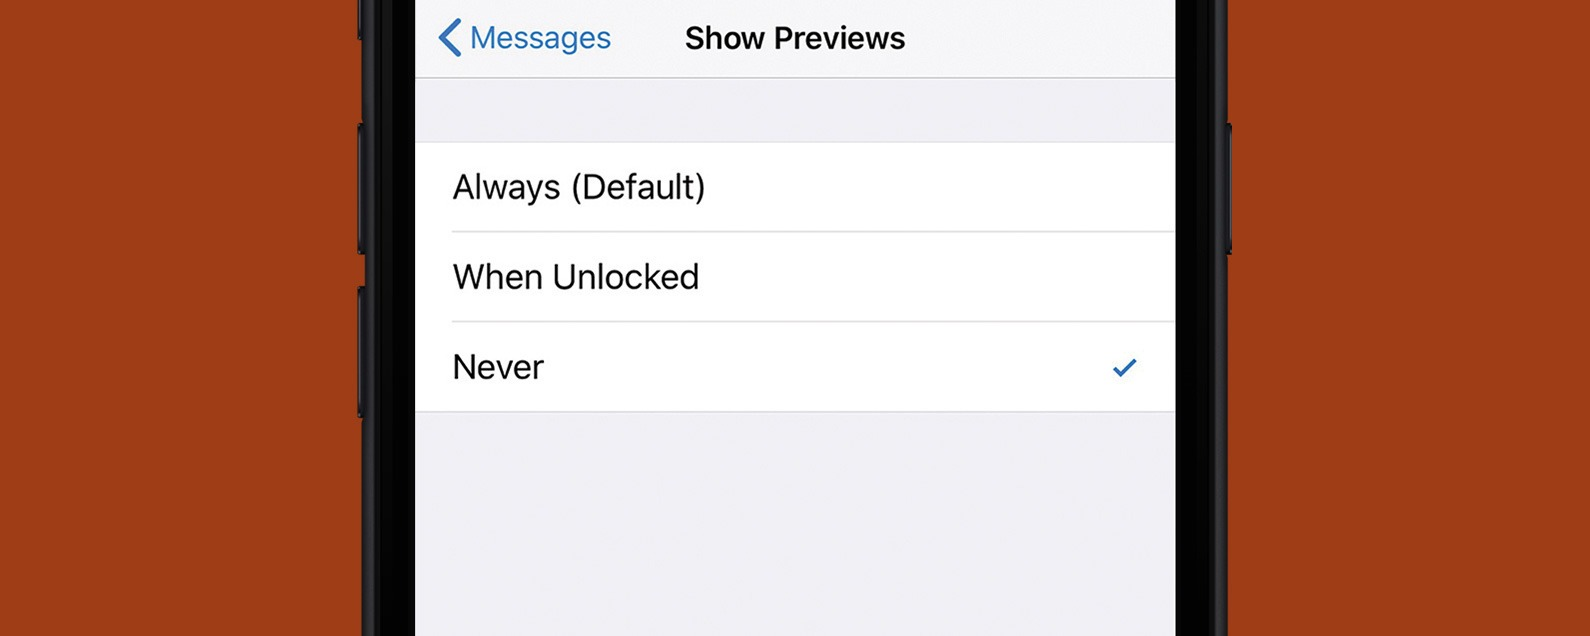 2019) How to Hide Text Messages on iPhone by Hiding iMessages or